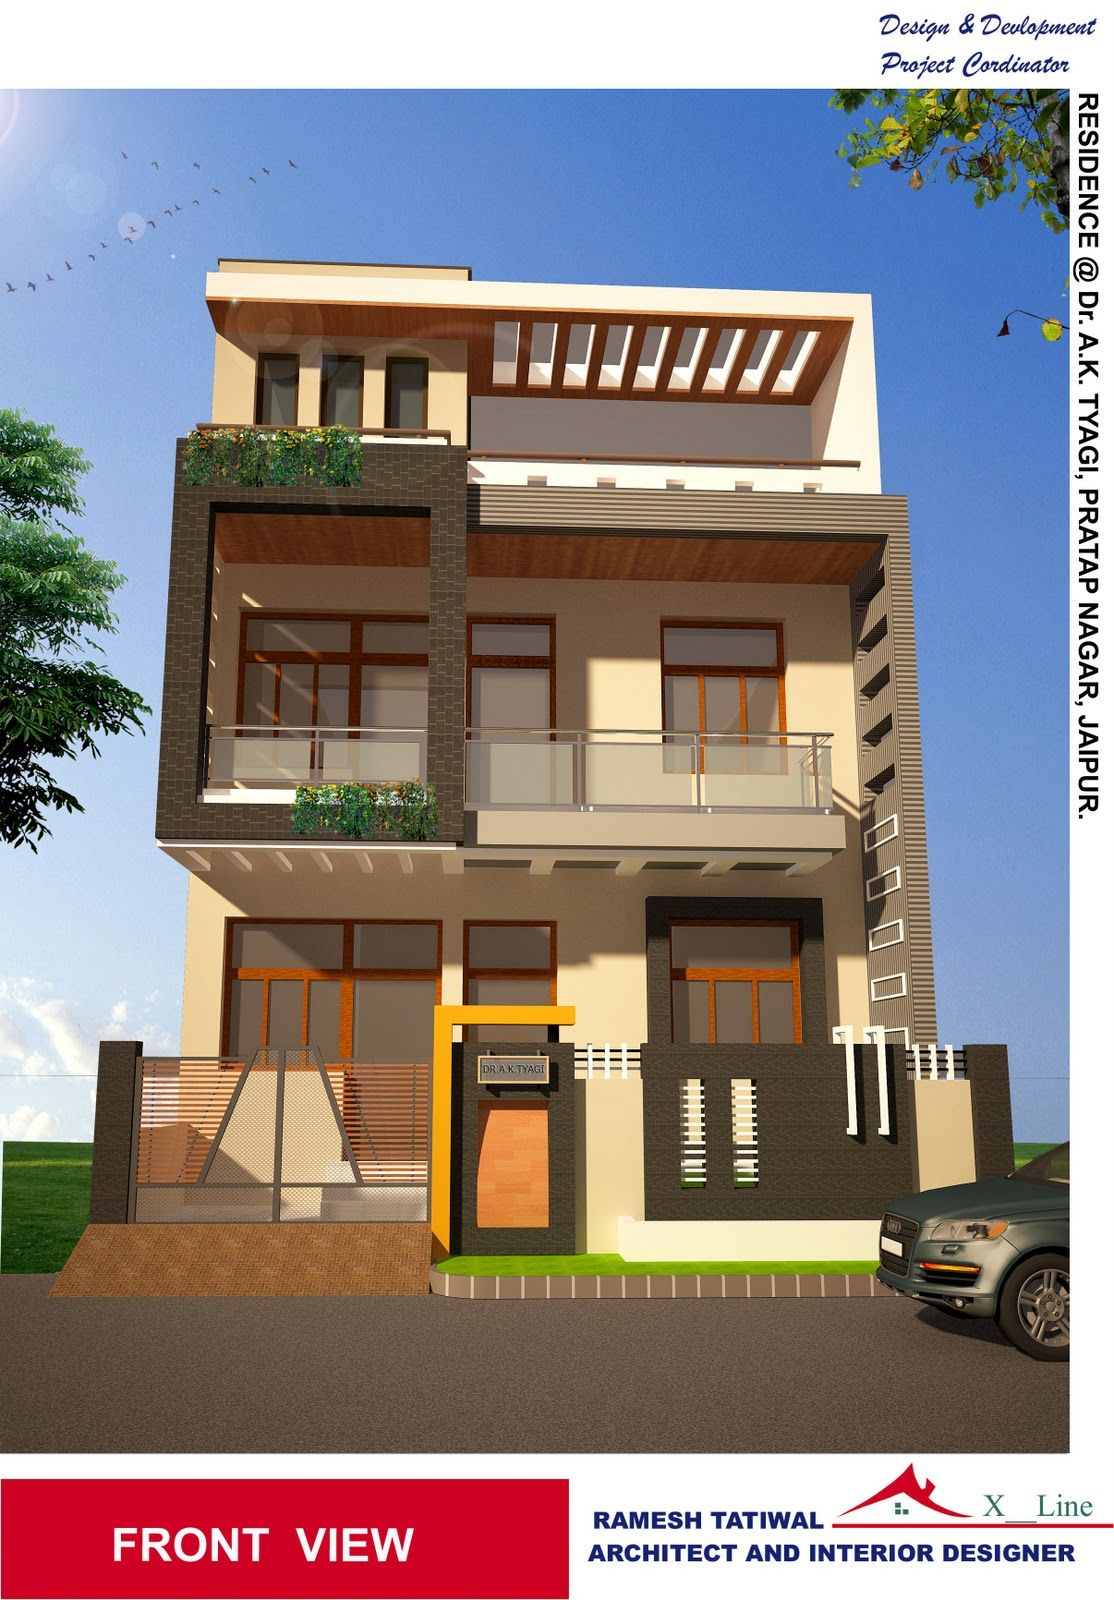 Housedesigns modern indian home architecture design from for Modern small home designs india